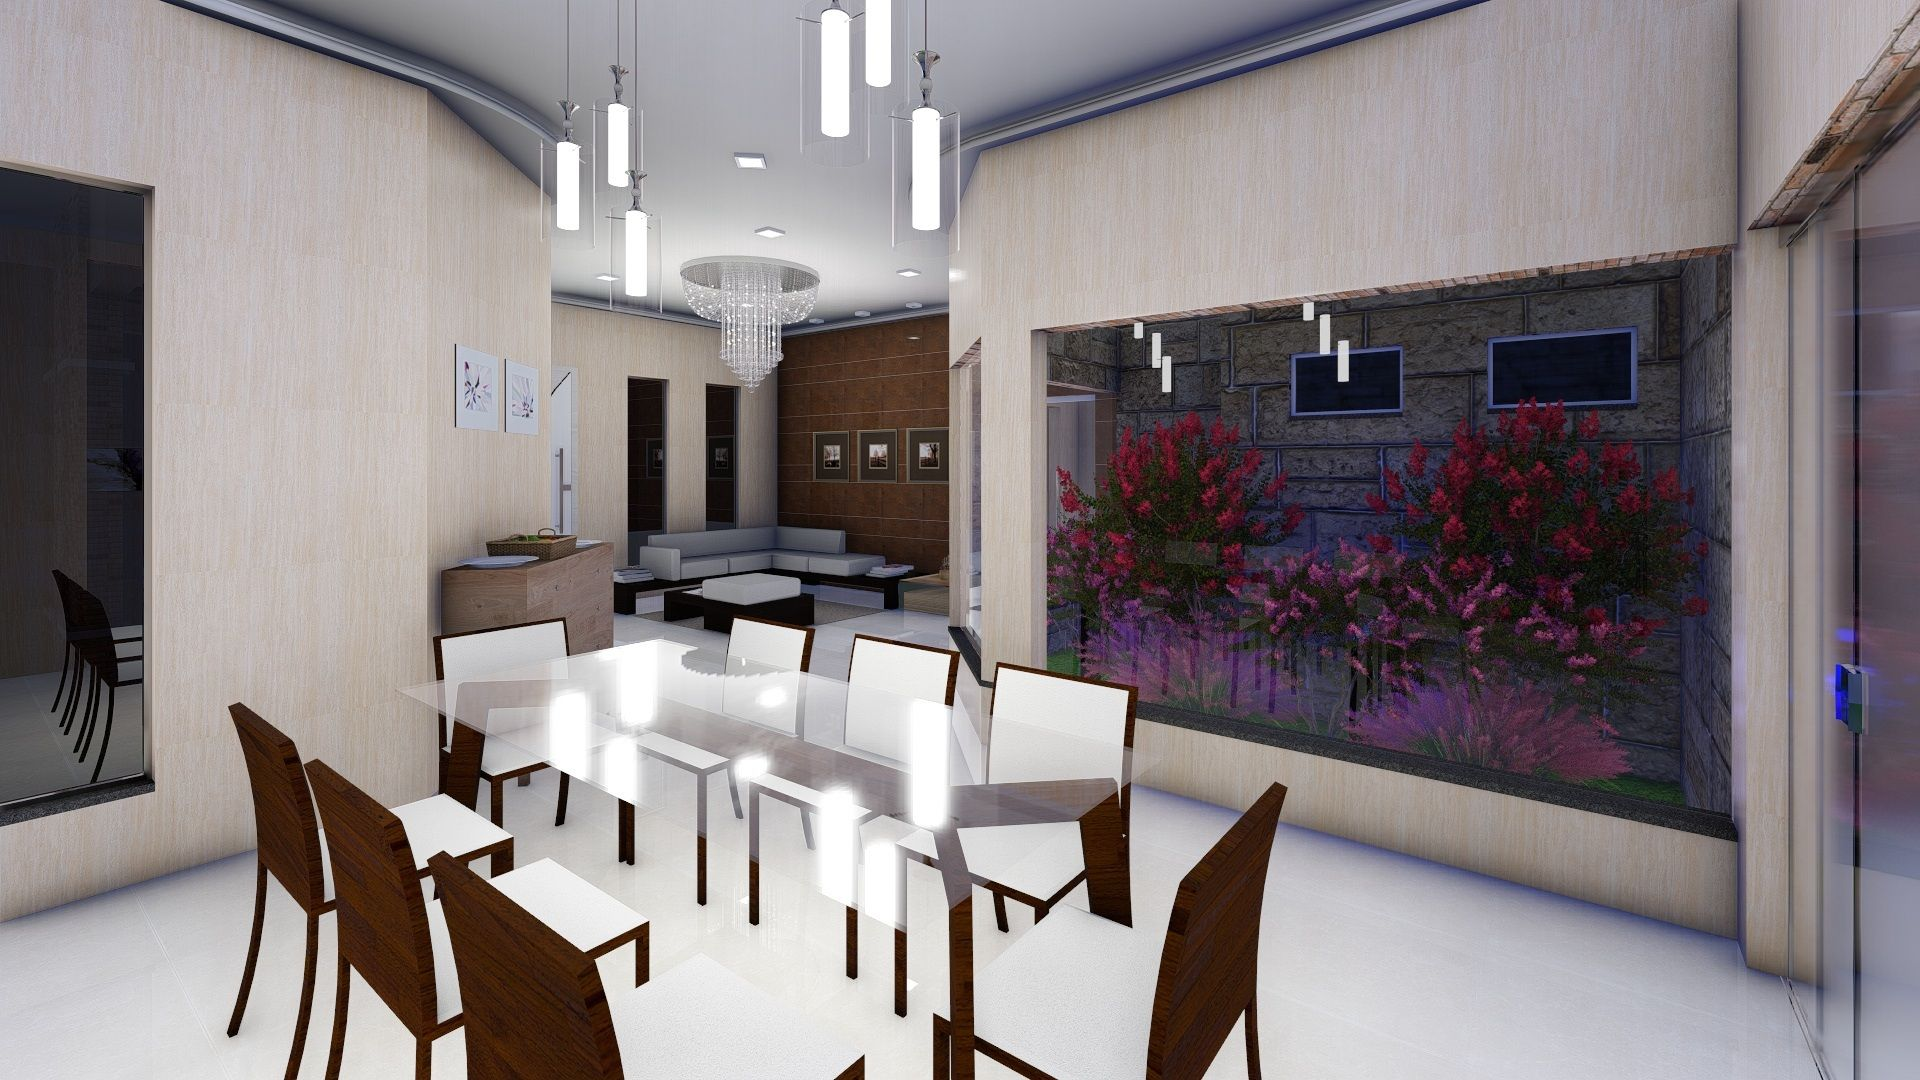 3d Home Architect Home And Landscape Design Suite 3d Home Architect Suite 3d Home Modeler Home And Scene Structure Suite Is A Simple To Utilize Plan That Acco